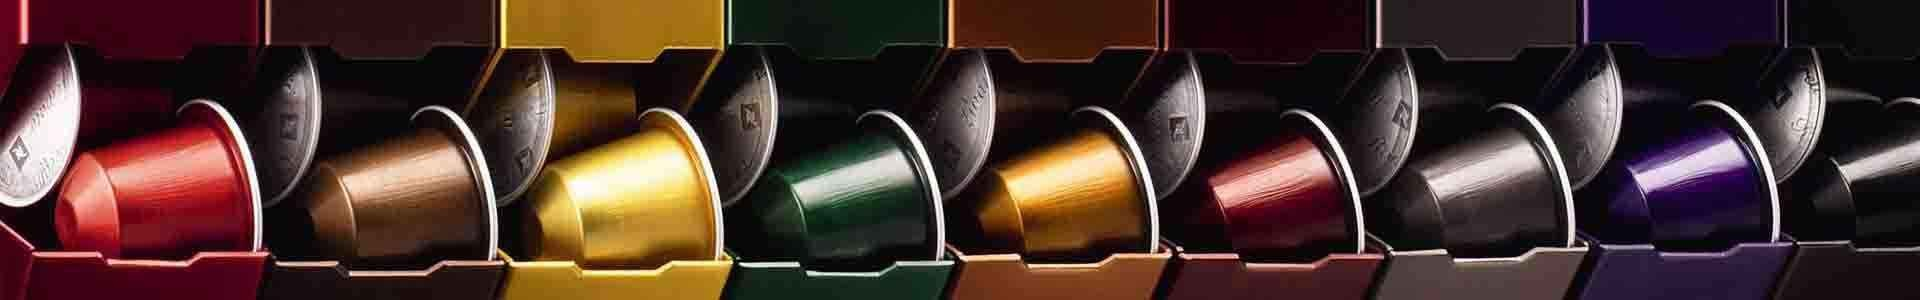 Buying Capsules for Nespresso, Coffee maker Nespreso | www.servimenaje.es